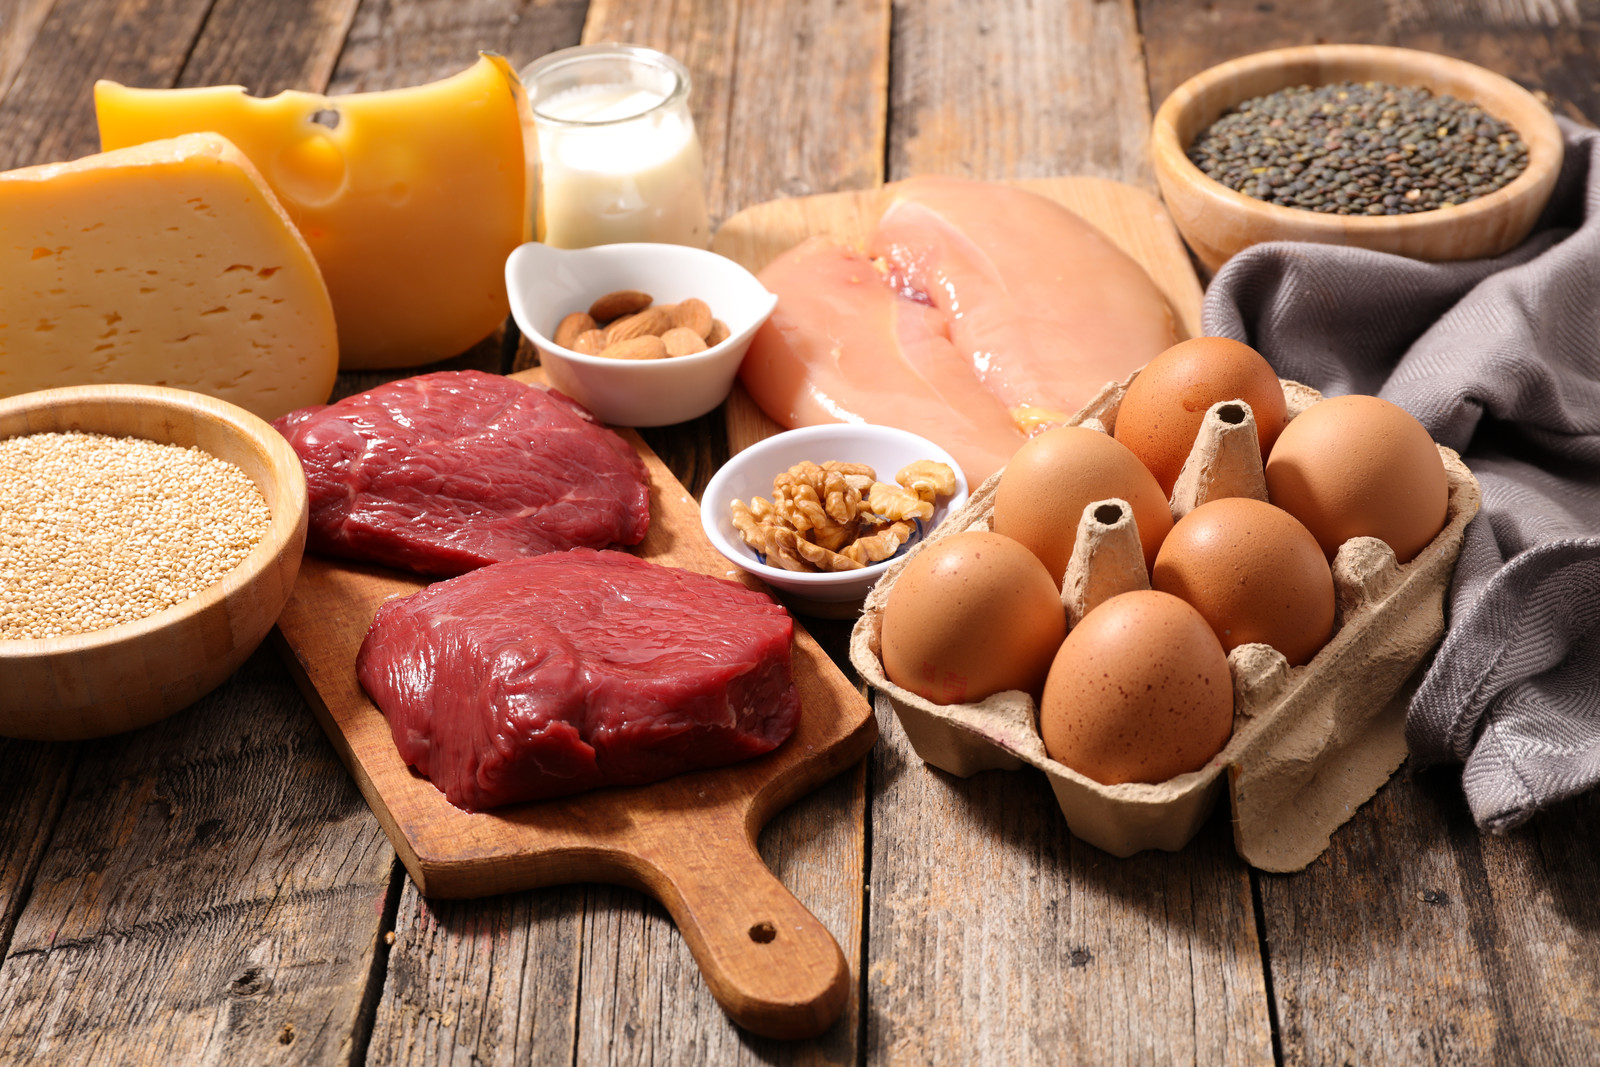 Glycine rich food sources, including cheese legumes red meat chicken and eggs